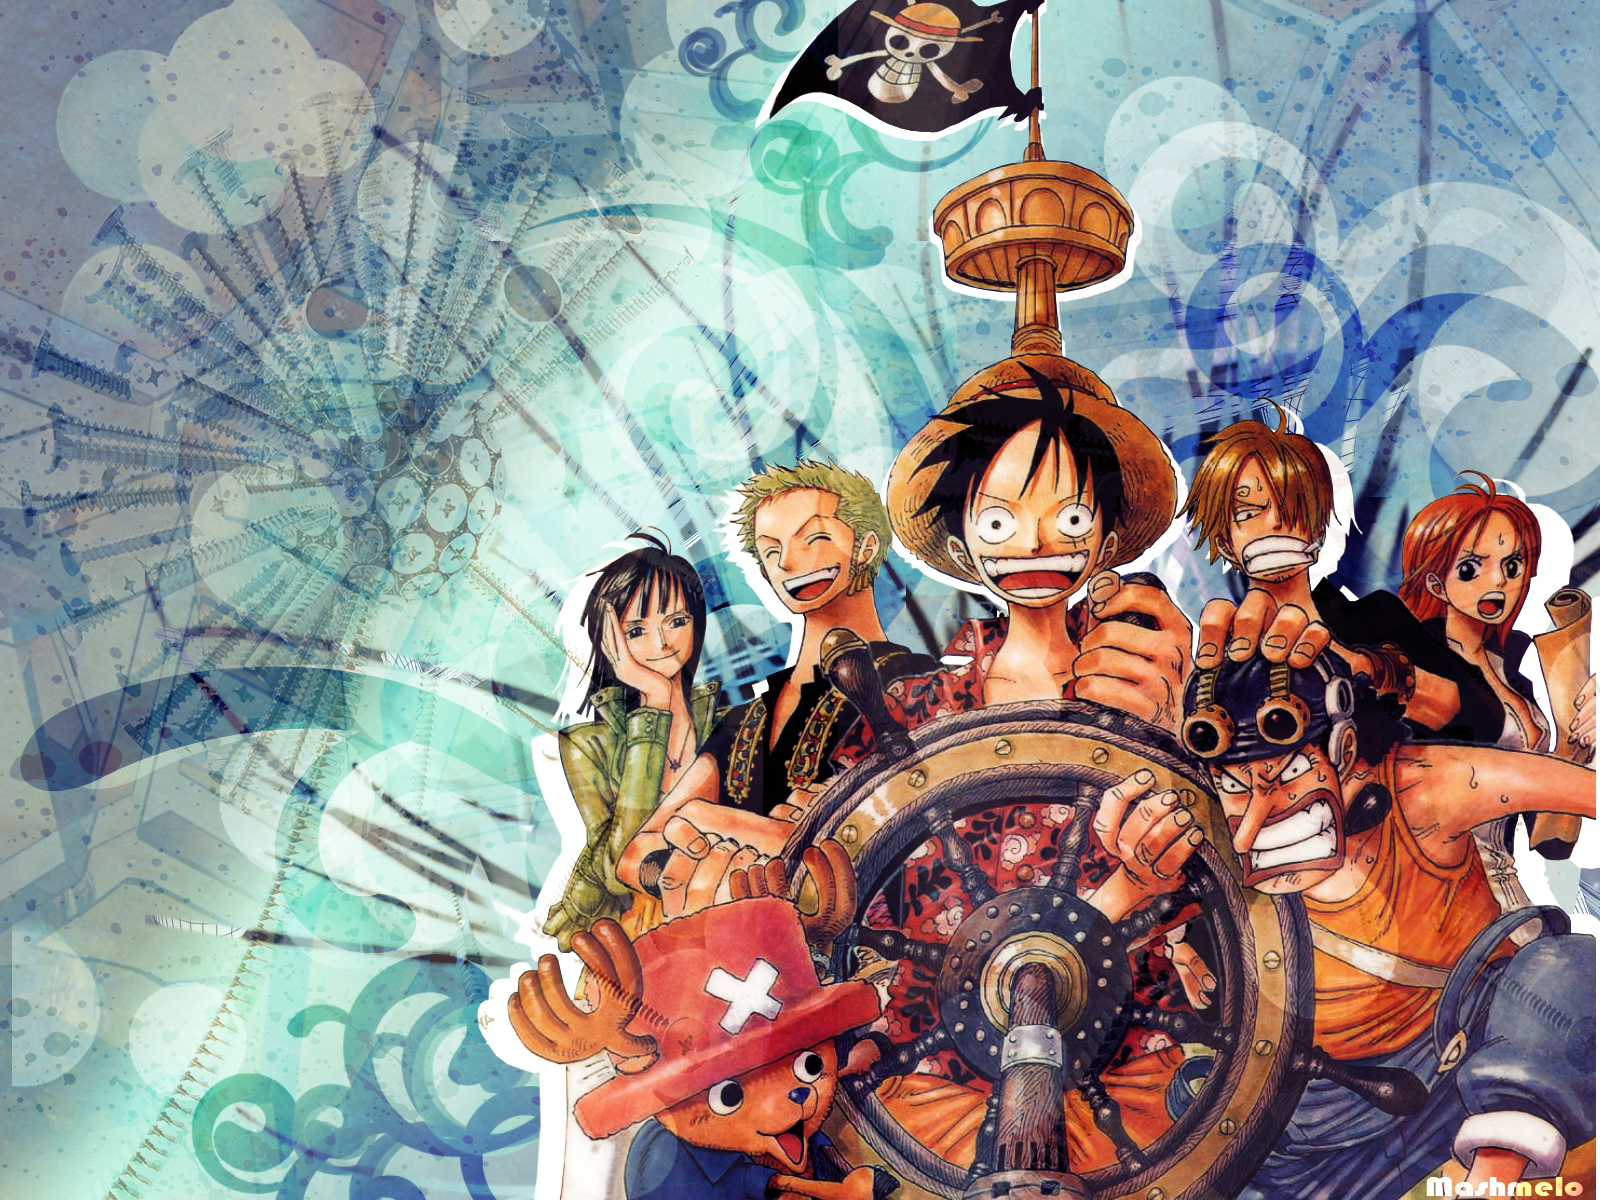 One Piece Wallpaper and Background Image   1600x1200   ID ...